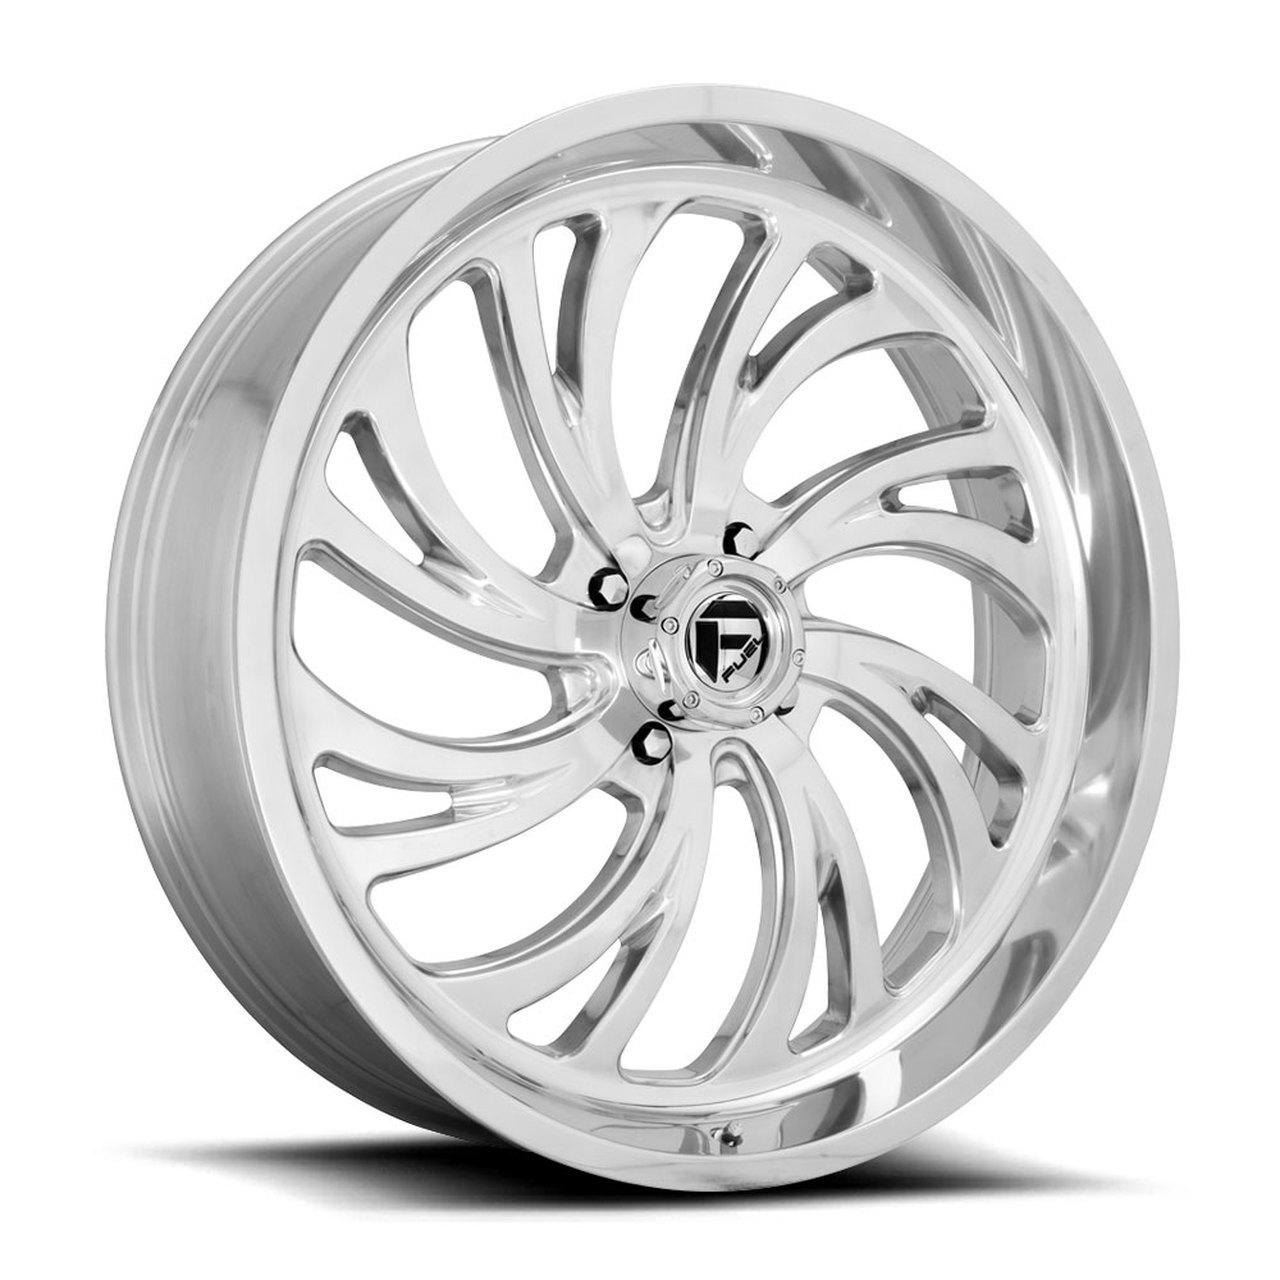 D203 - KOMPRESSOR UTV High Luster Polished